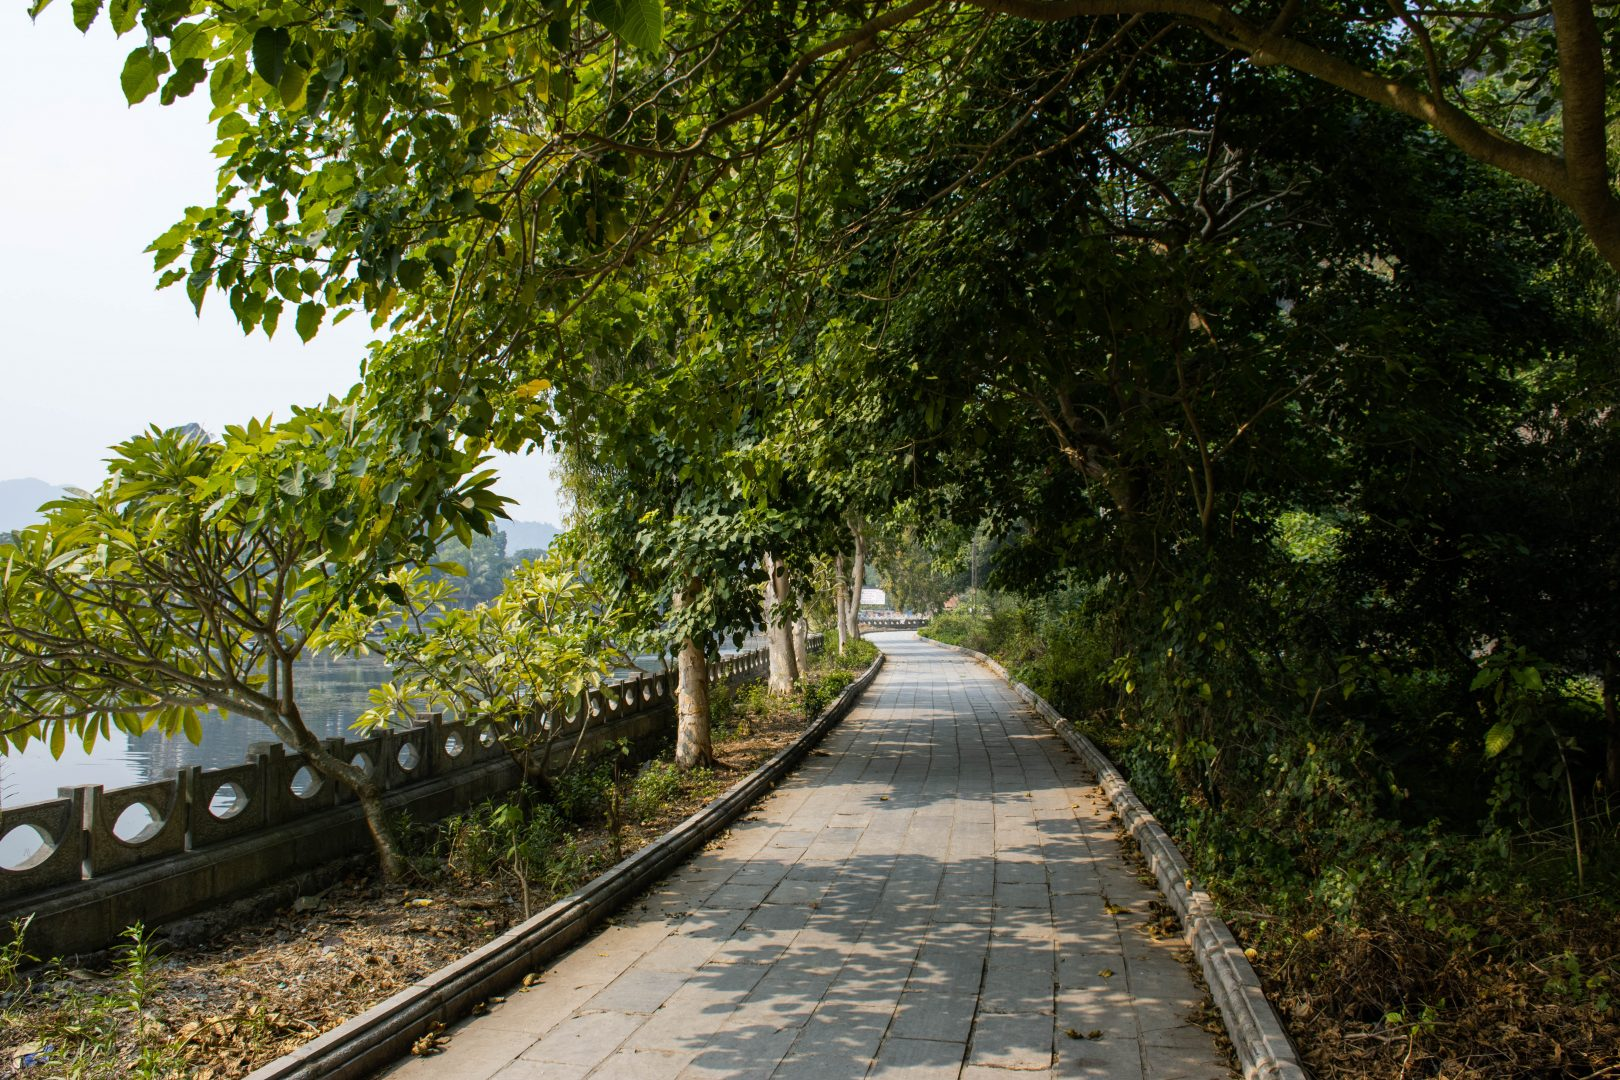 gray concrete pathway between green trees and concrete fence during daytime